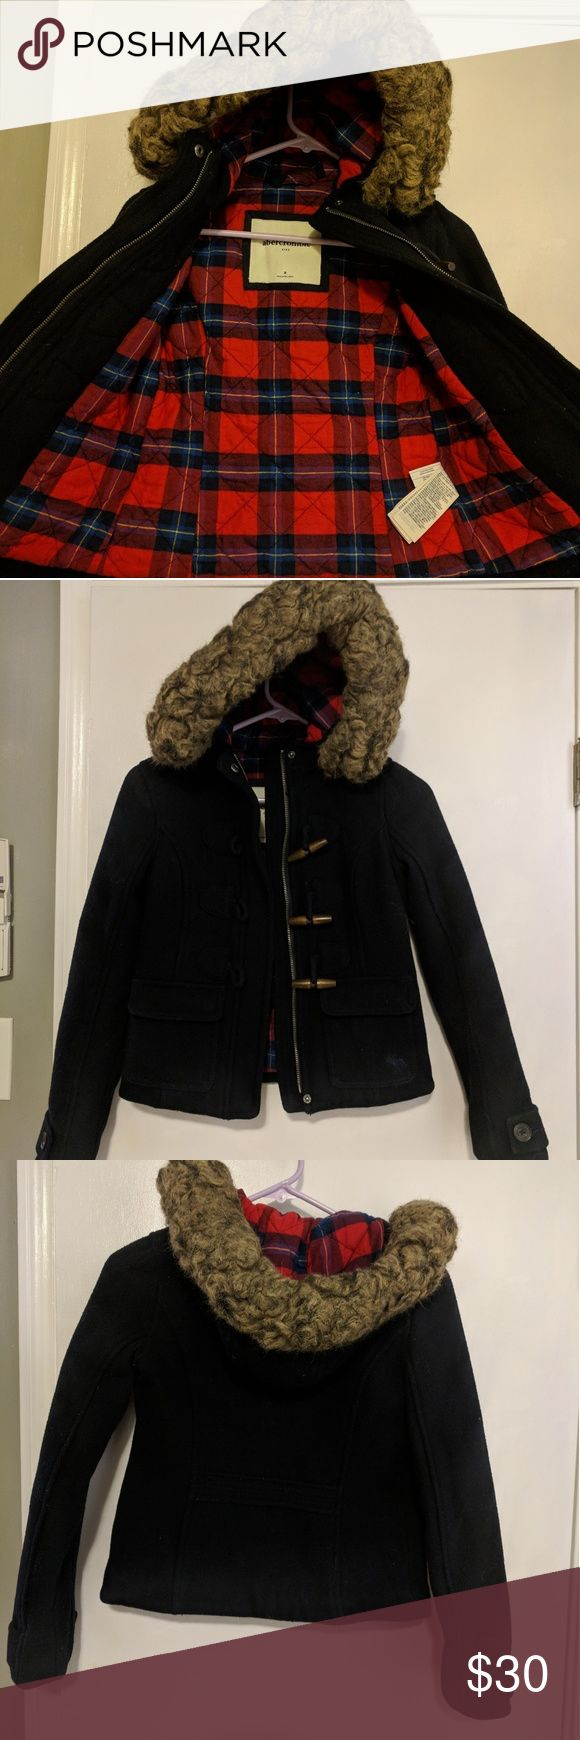 Abercrombie girls coat w/ plaid lining size Medium Girls size medium dark navy blue color, in great condition! abercrombie kids Jackets & Coats Pea Coats